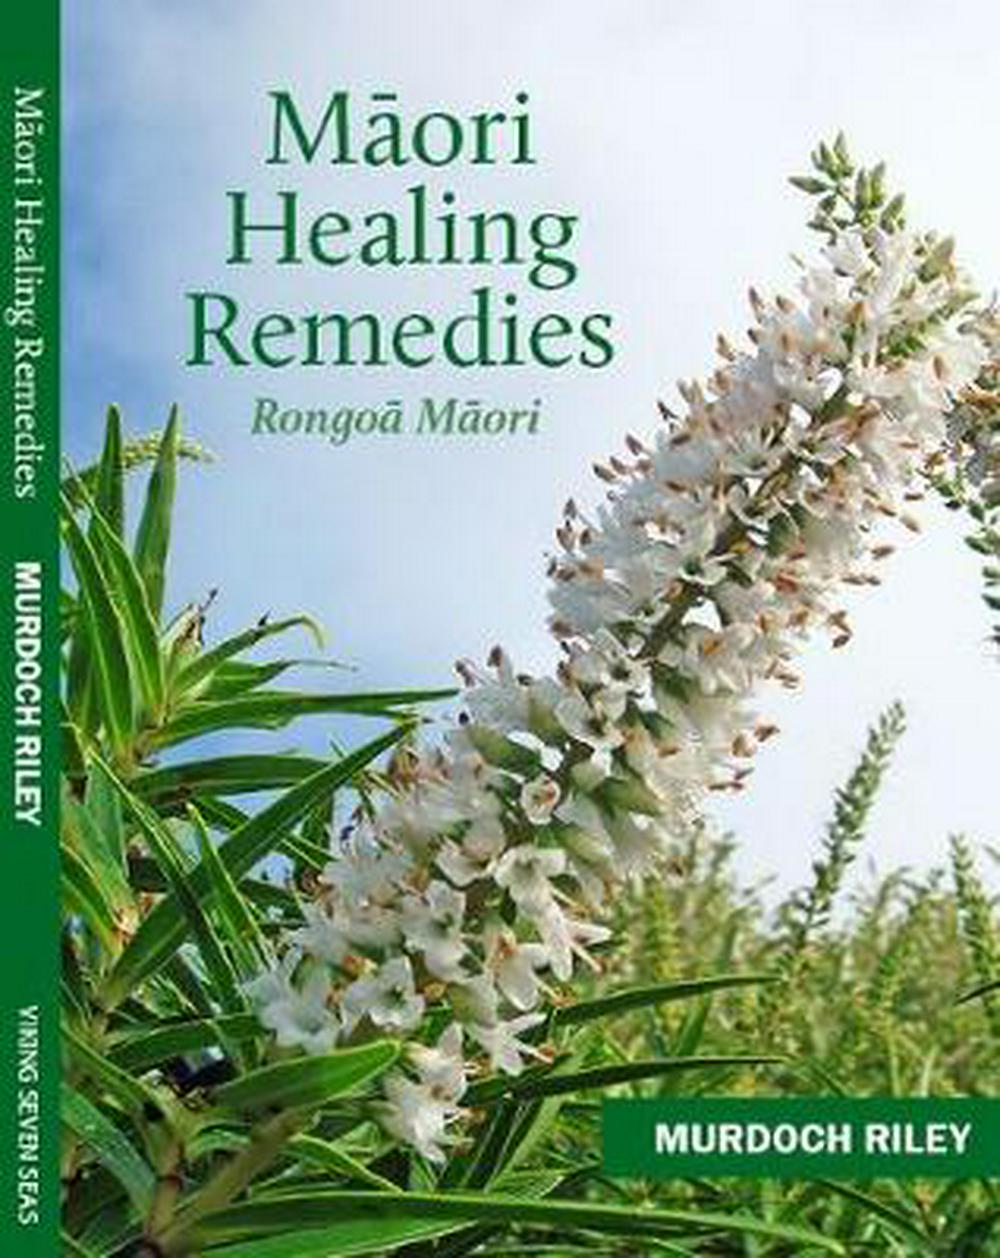 MAORI HEALING REMEDIES BOOK